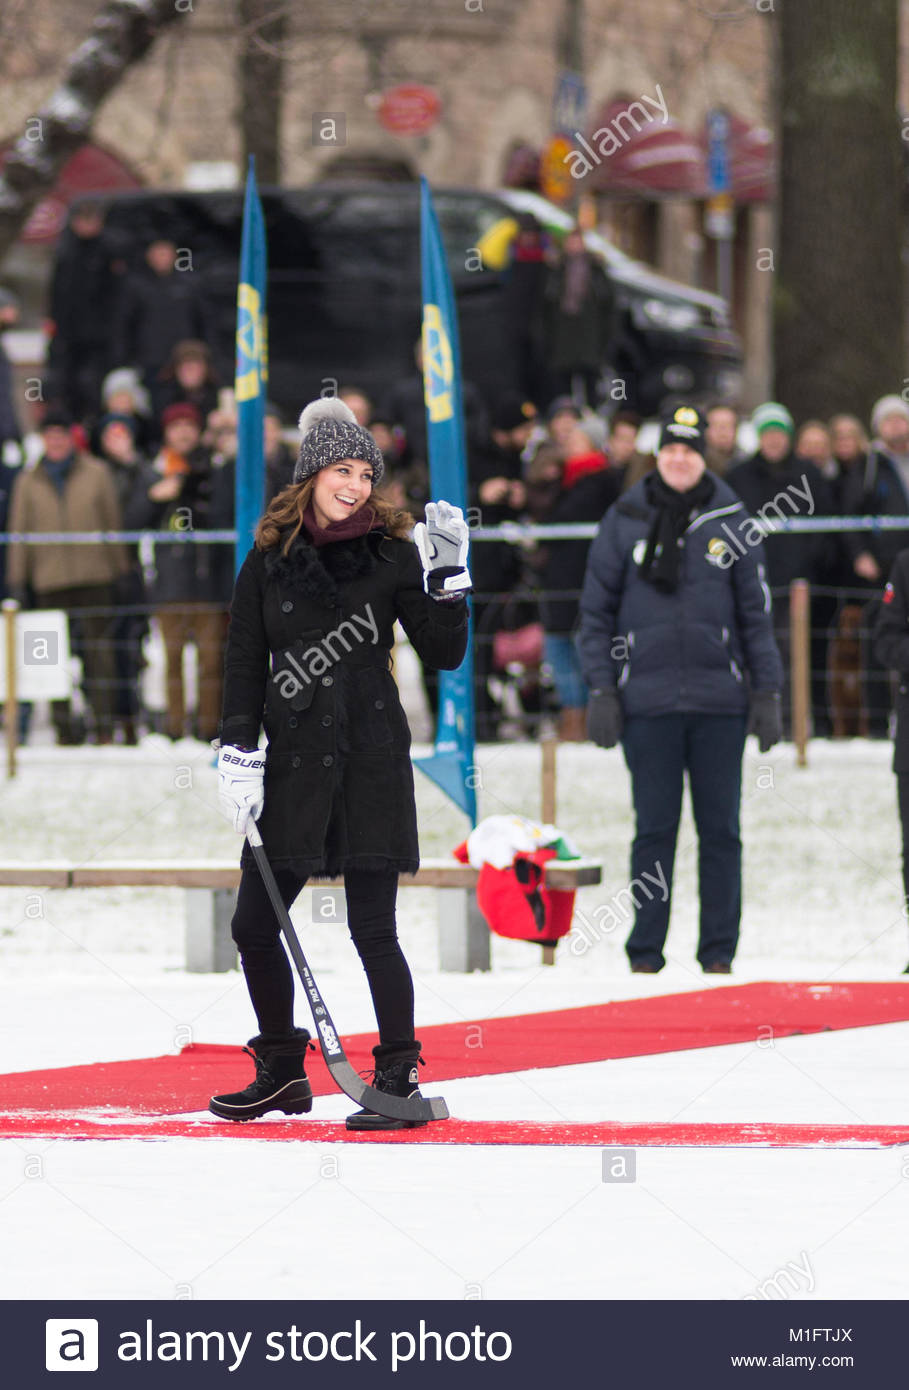 Stockholm, Sweden, 30th January, 2018. The Duke and Duchess of Cambridge's Tour of Sweden 30th-31th January,2018. - Stock Image